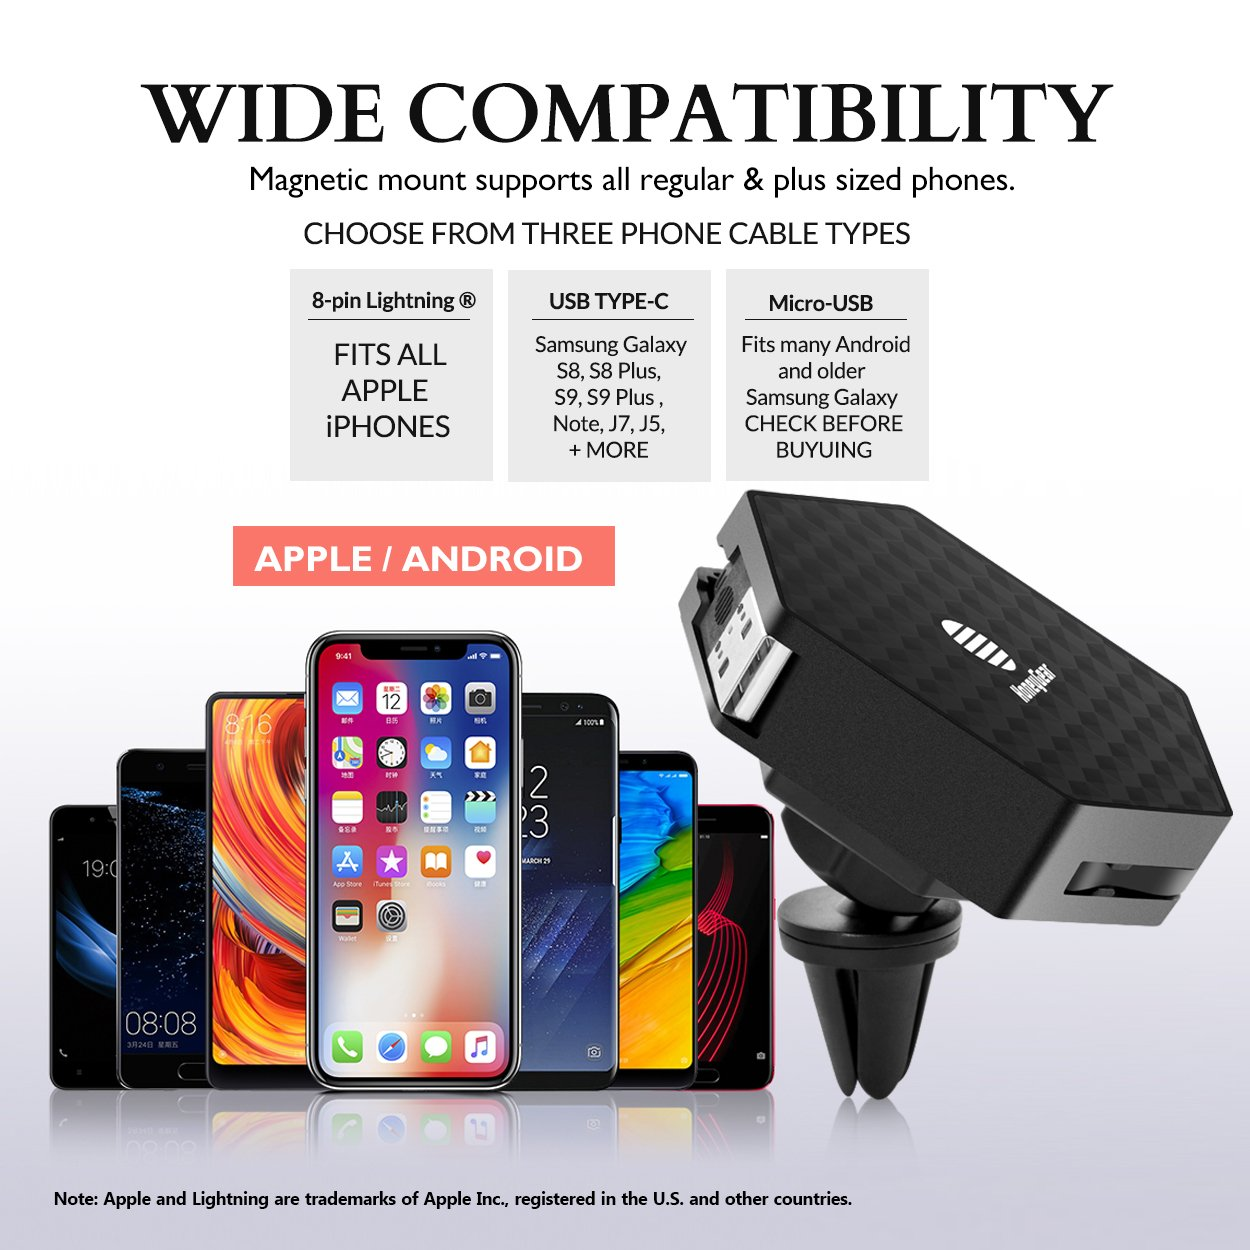 White or Black Magnetic Portable Retractable Cable Car Phone Holder USB-Type-C Micro-USB Magnetic Car Vent Mount Choose Color /& Cable Type 8-pin Connector 4351511213 HoneyGear Flux-Field Grip